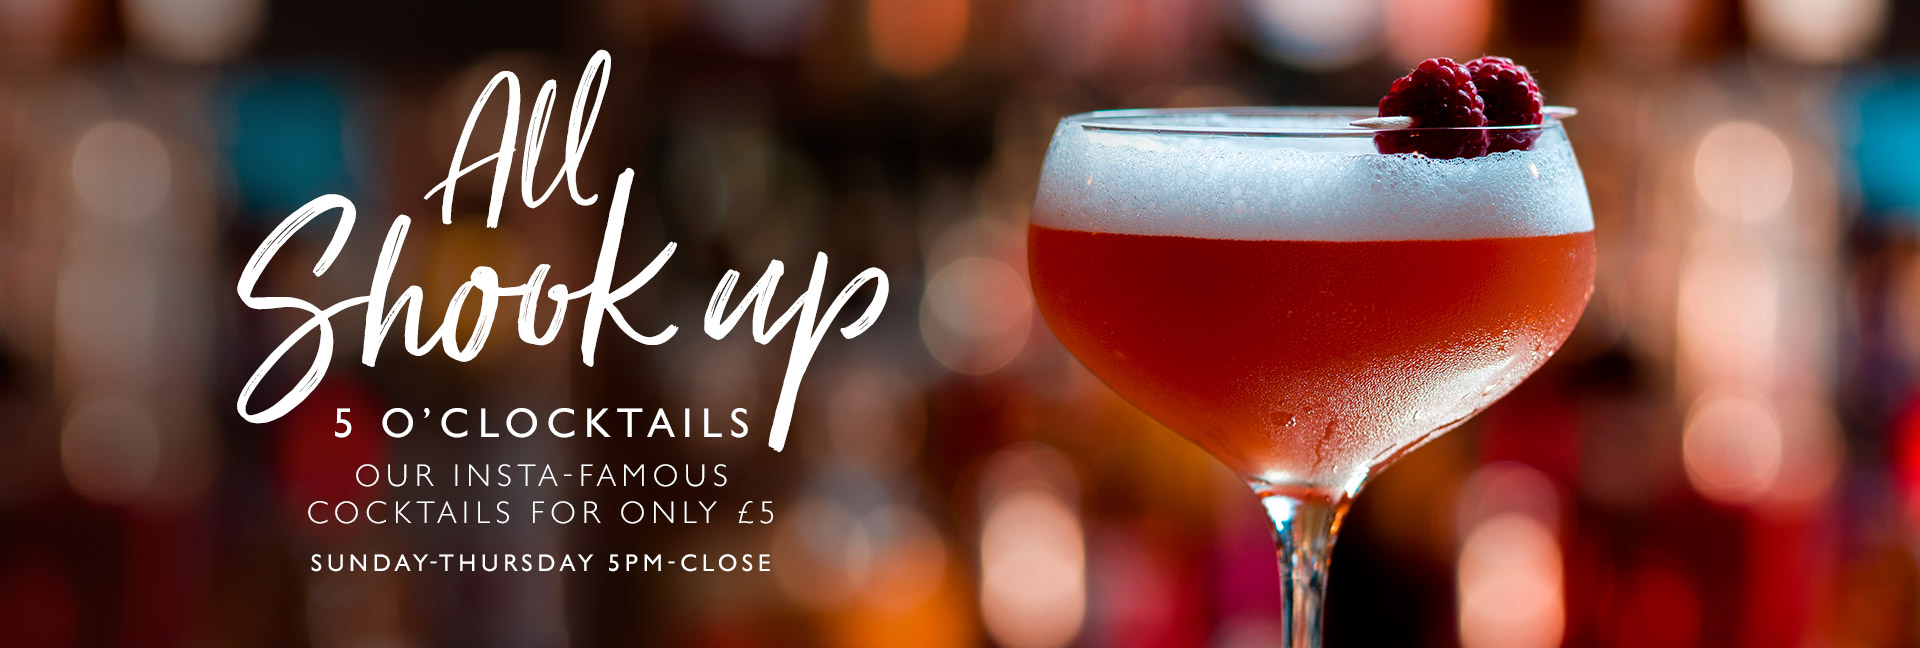 5 O'clocktails at All Bar One Sutton - Book now